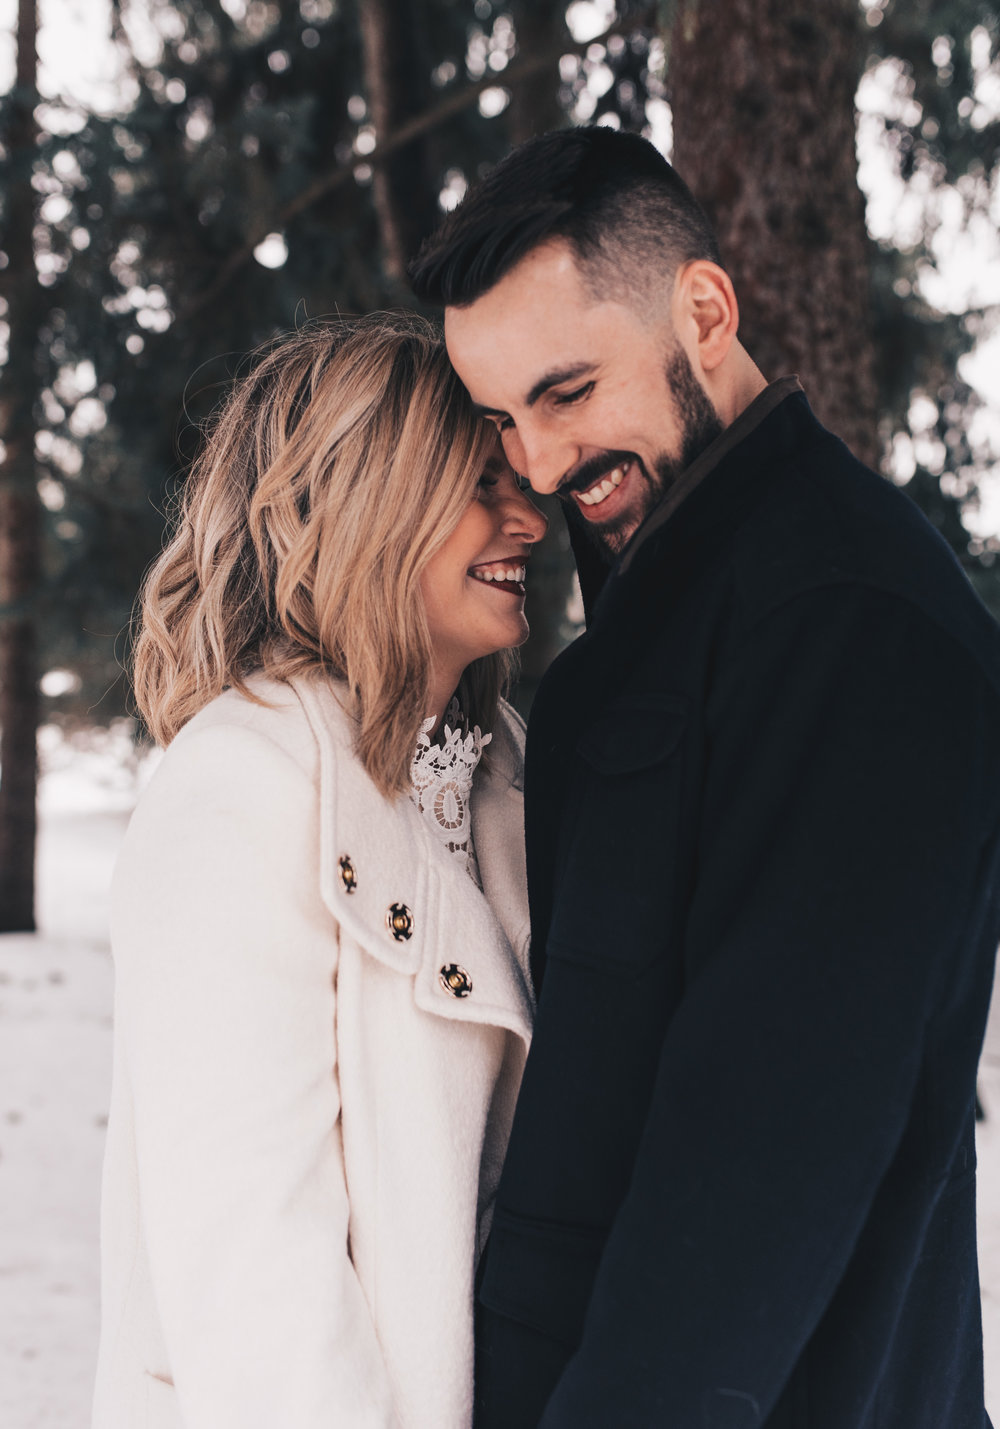 Winter Couples Session, Outdoor Winter Engagement Session, Woodsy Adventurous Couples Session, Illinois Wedding Photographer, Illinois Couples Photographer, Illinois Engagement Photographer